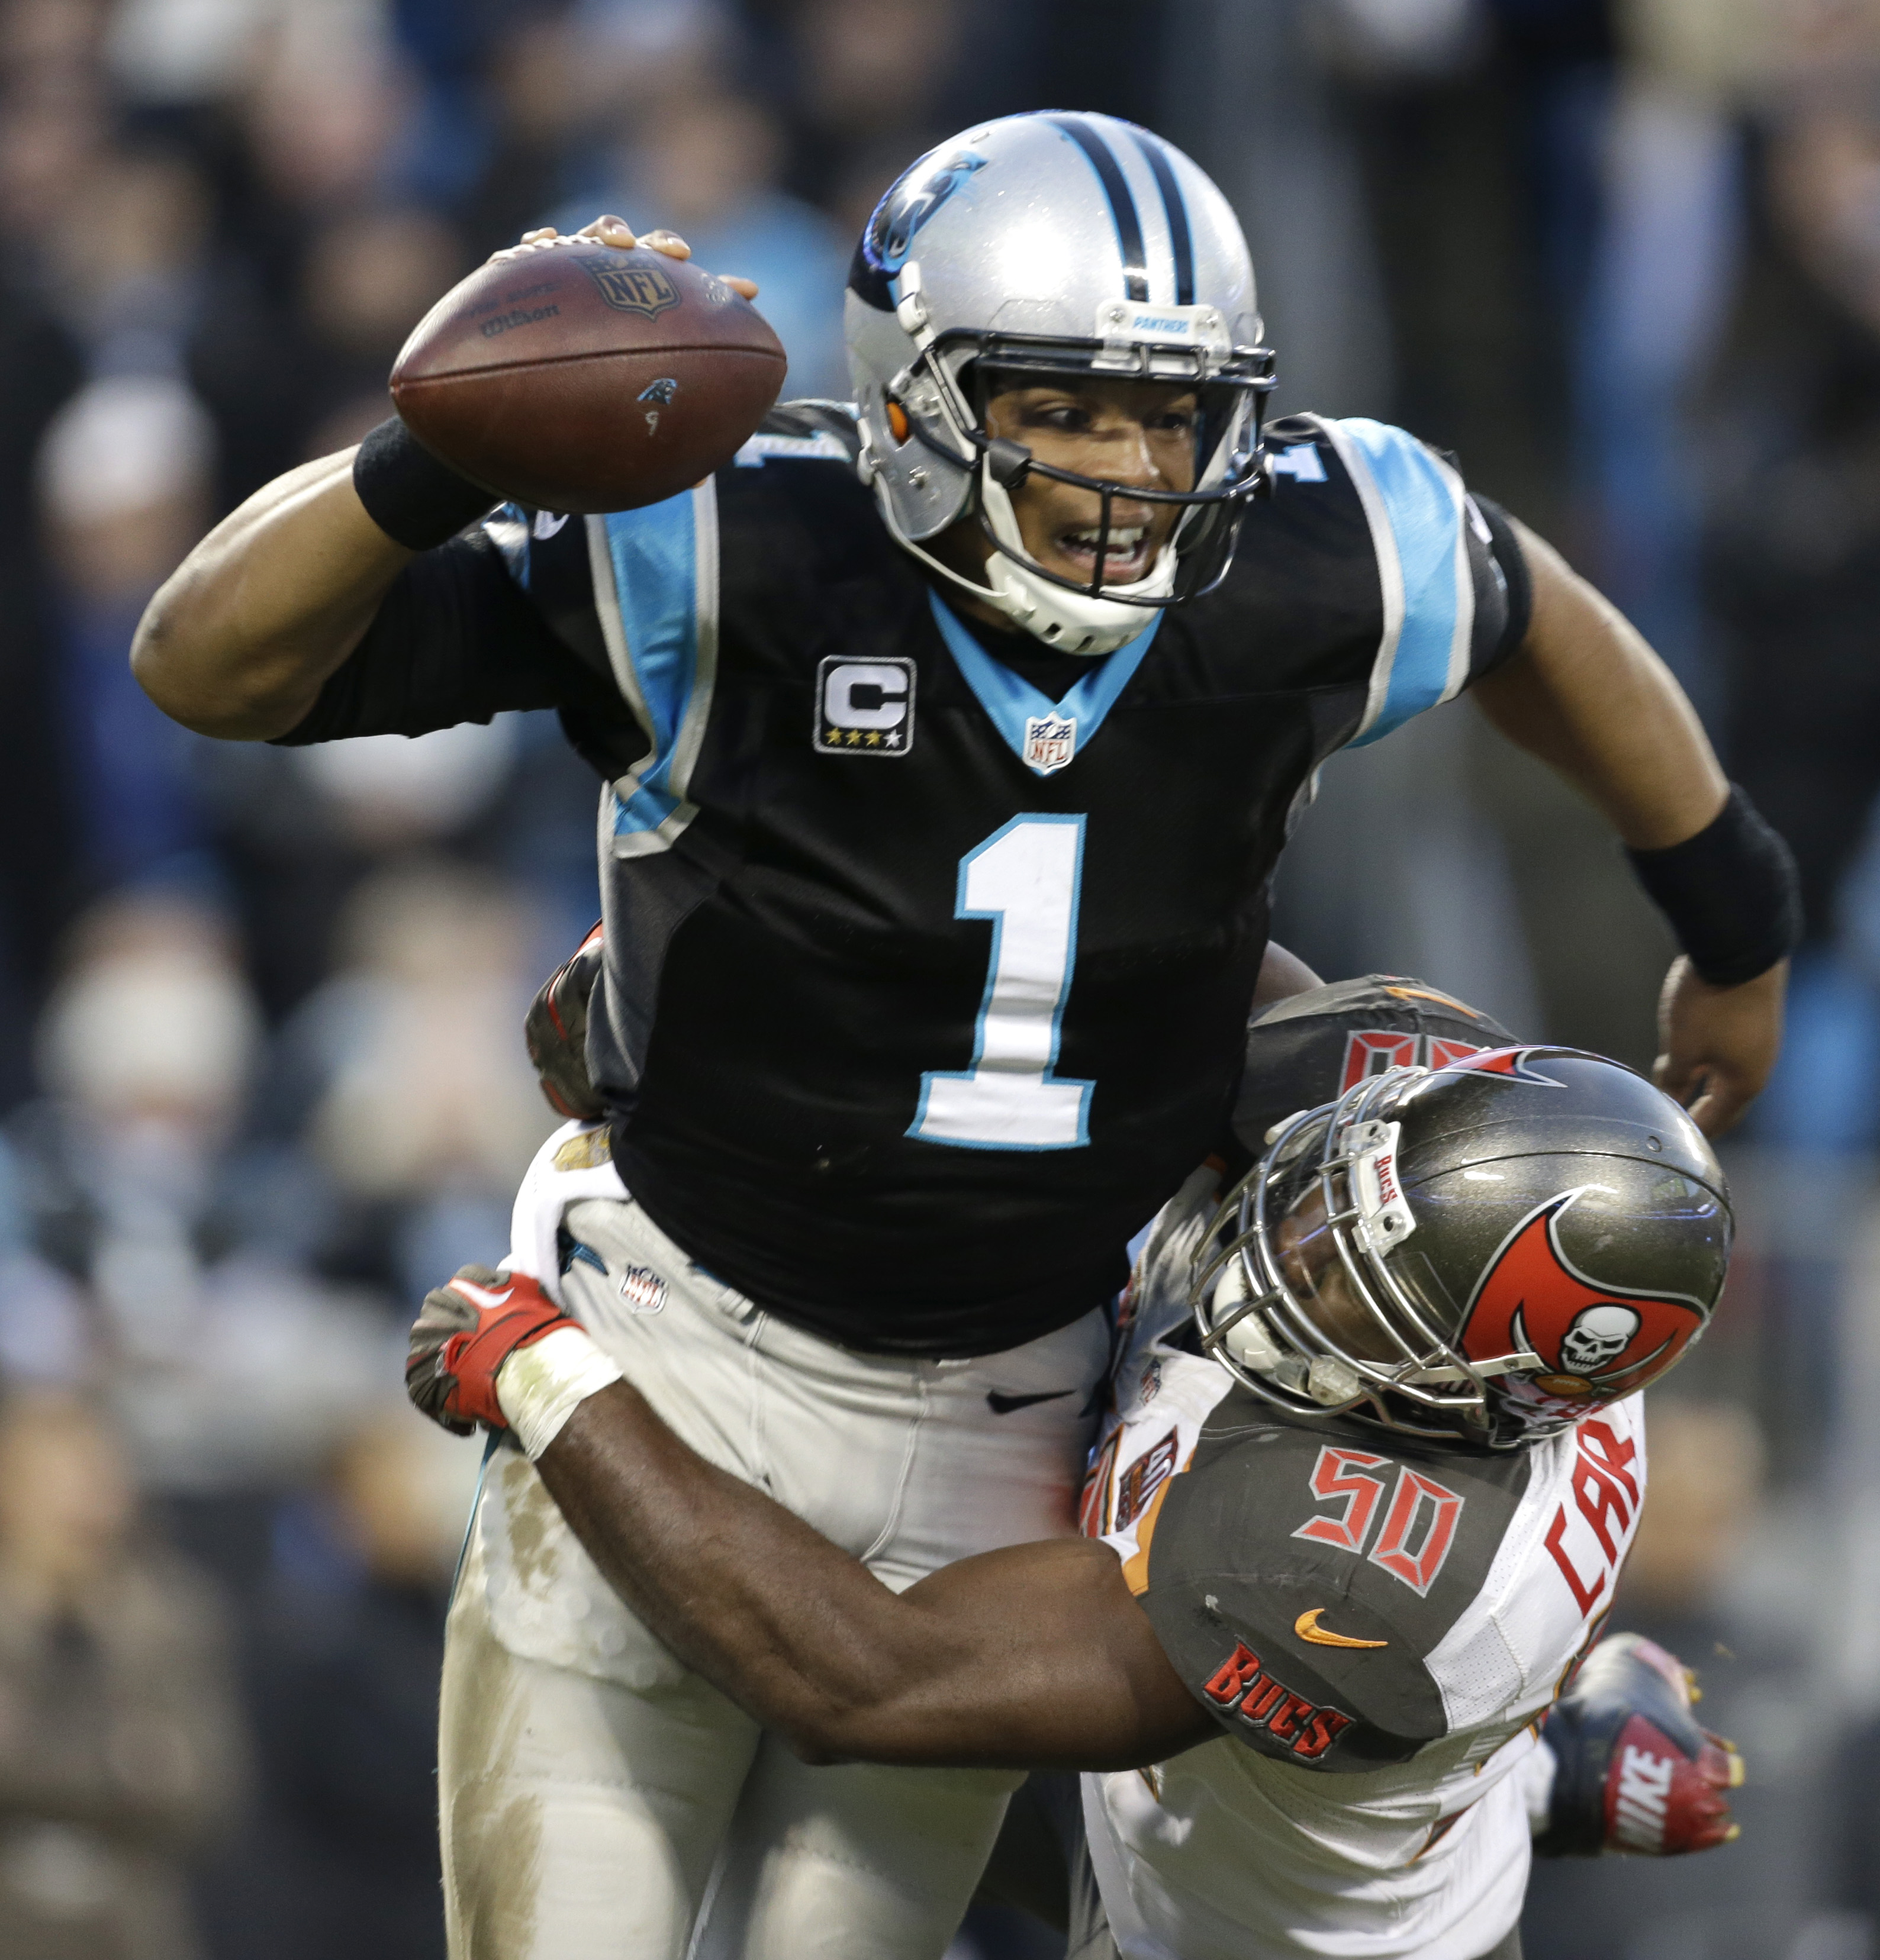 Carolina Panthers quarterback Cam Newton (1) is sacked by Tampa Bay Buccaneers linebacker Bruce Carter (50) in the first half of an NFL football game in Charlotte, N.C., Sunday, Jan. 3, 2016. (AP Photo/Bob Leverone)